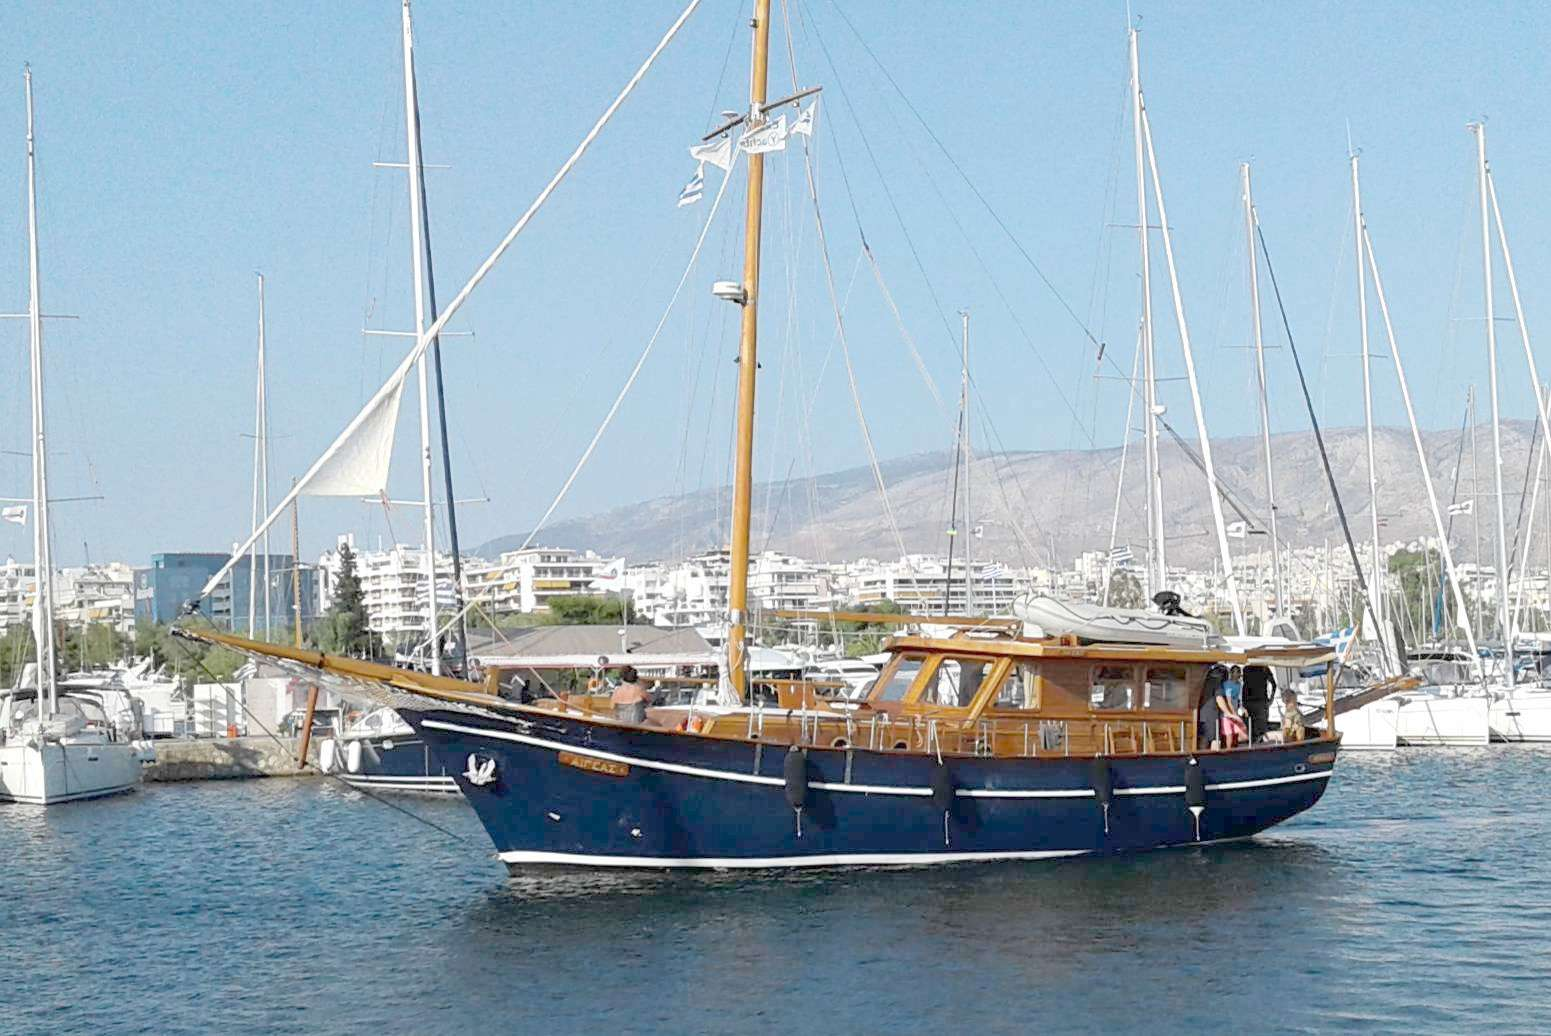 Charter with AEGEAS on compassyachtcharters.com